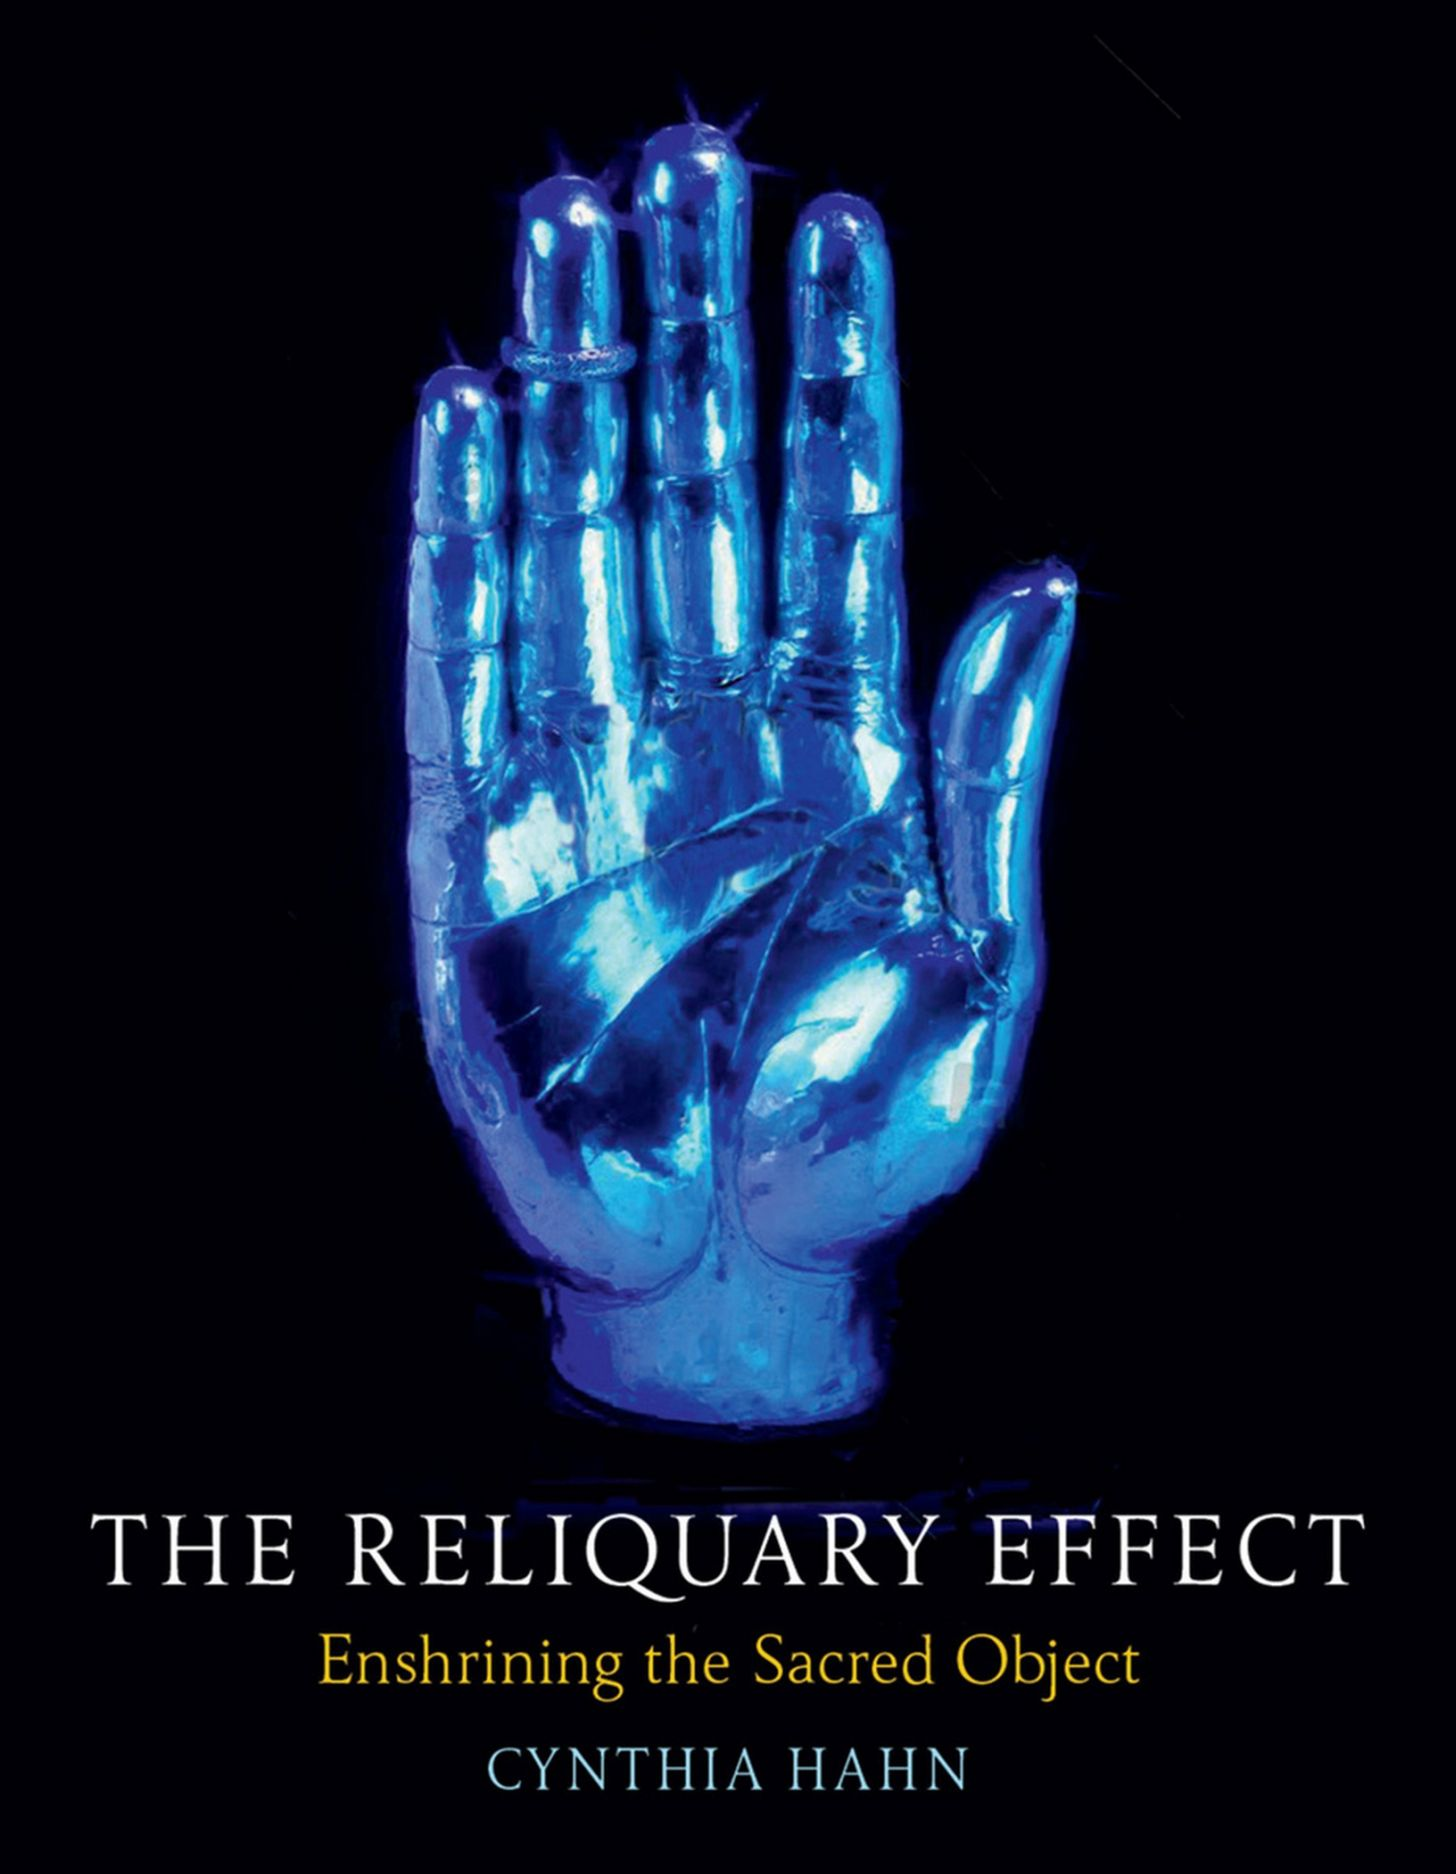 The Reliquary Effect: Enshrining the Sacred Object